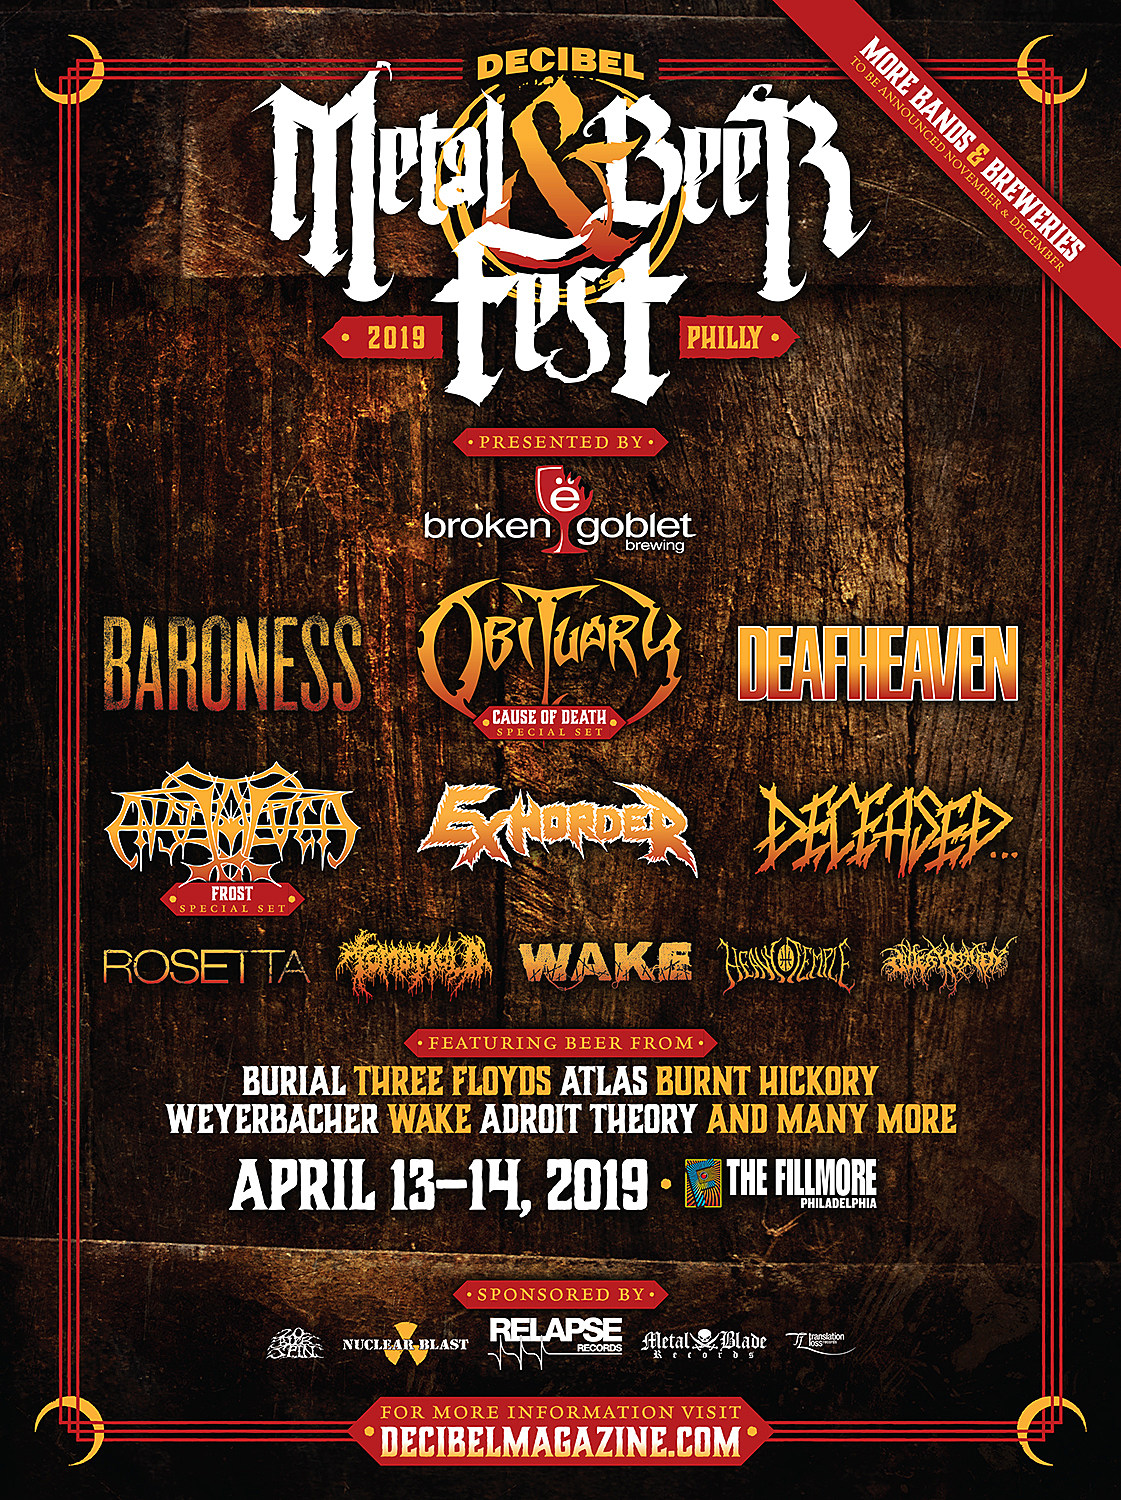 Decibel Metal Beer Fest